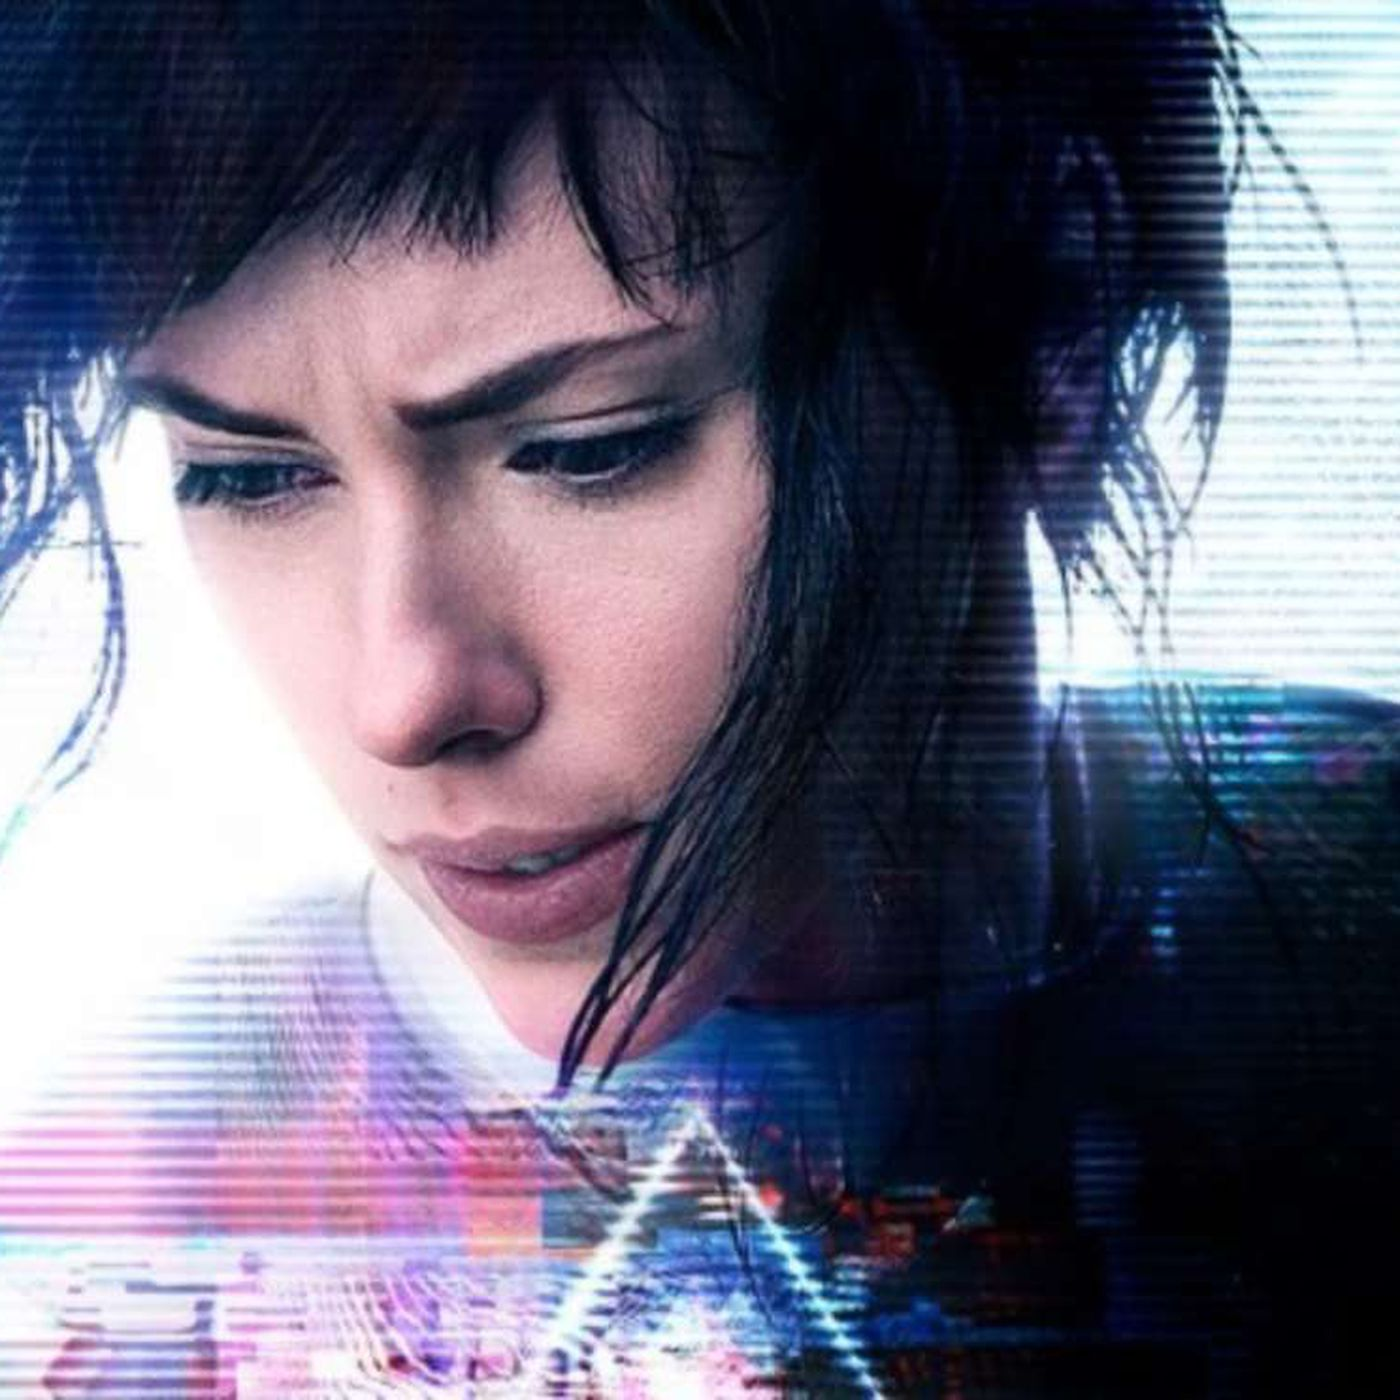 Ghost In The Shell Beloved In Japan Despite Box Office Blowout In The West Polygon